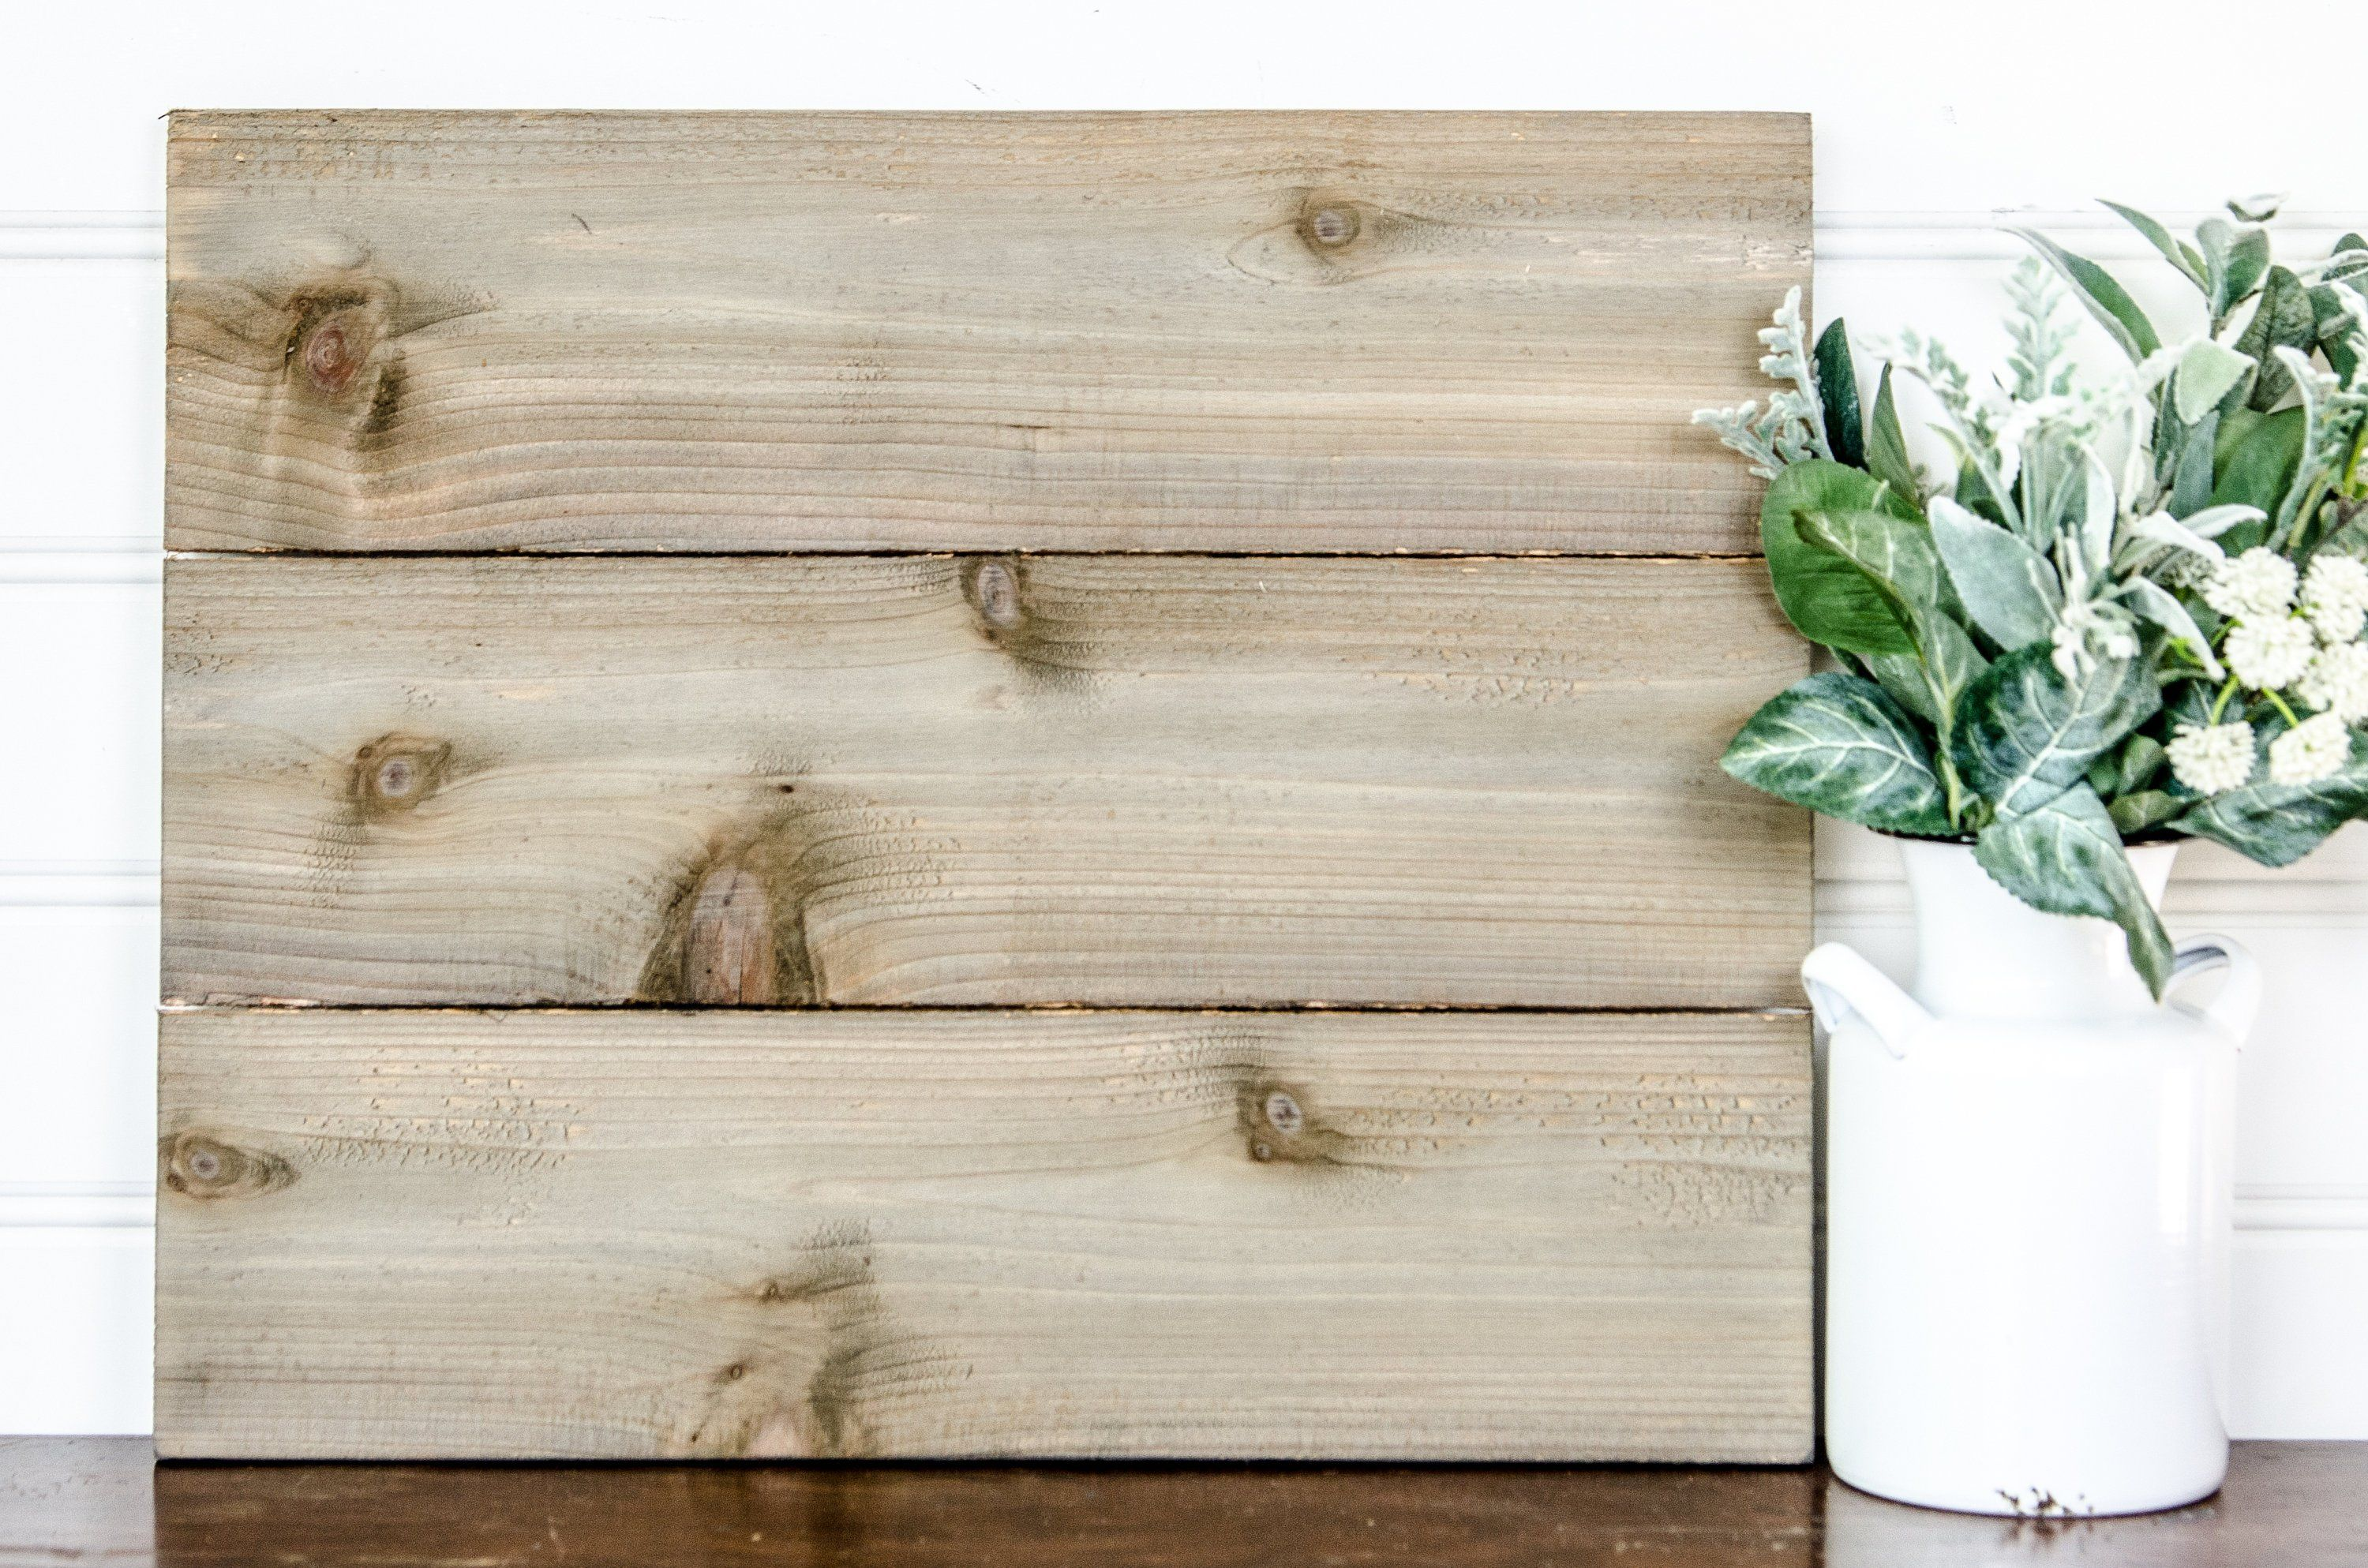 Blank Wood Sign Blank Wooden Sign Wood Sign Blank Wood Pallet Signs Rustic Wooden Signs Diy Wood Signs